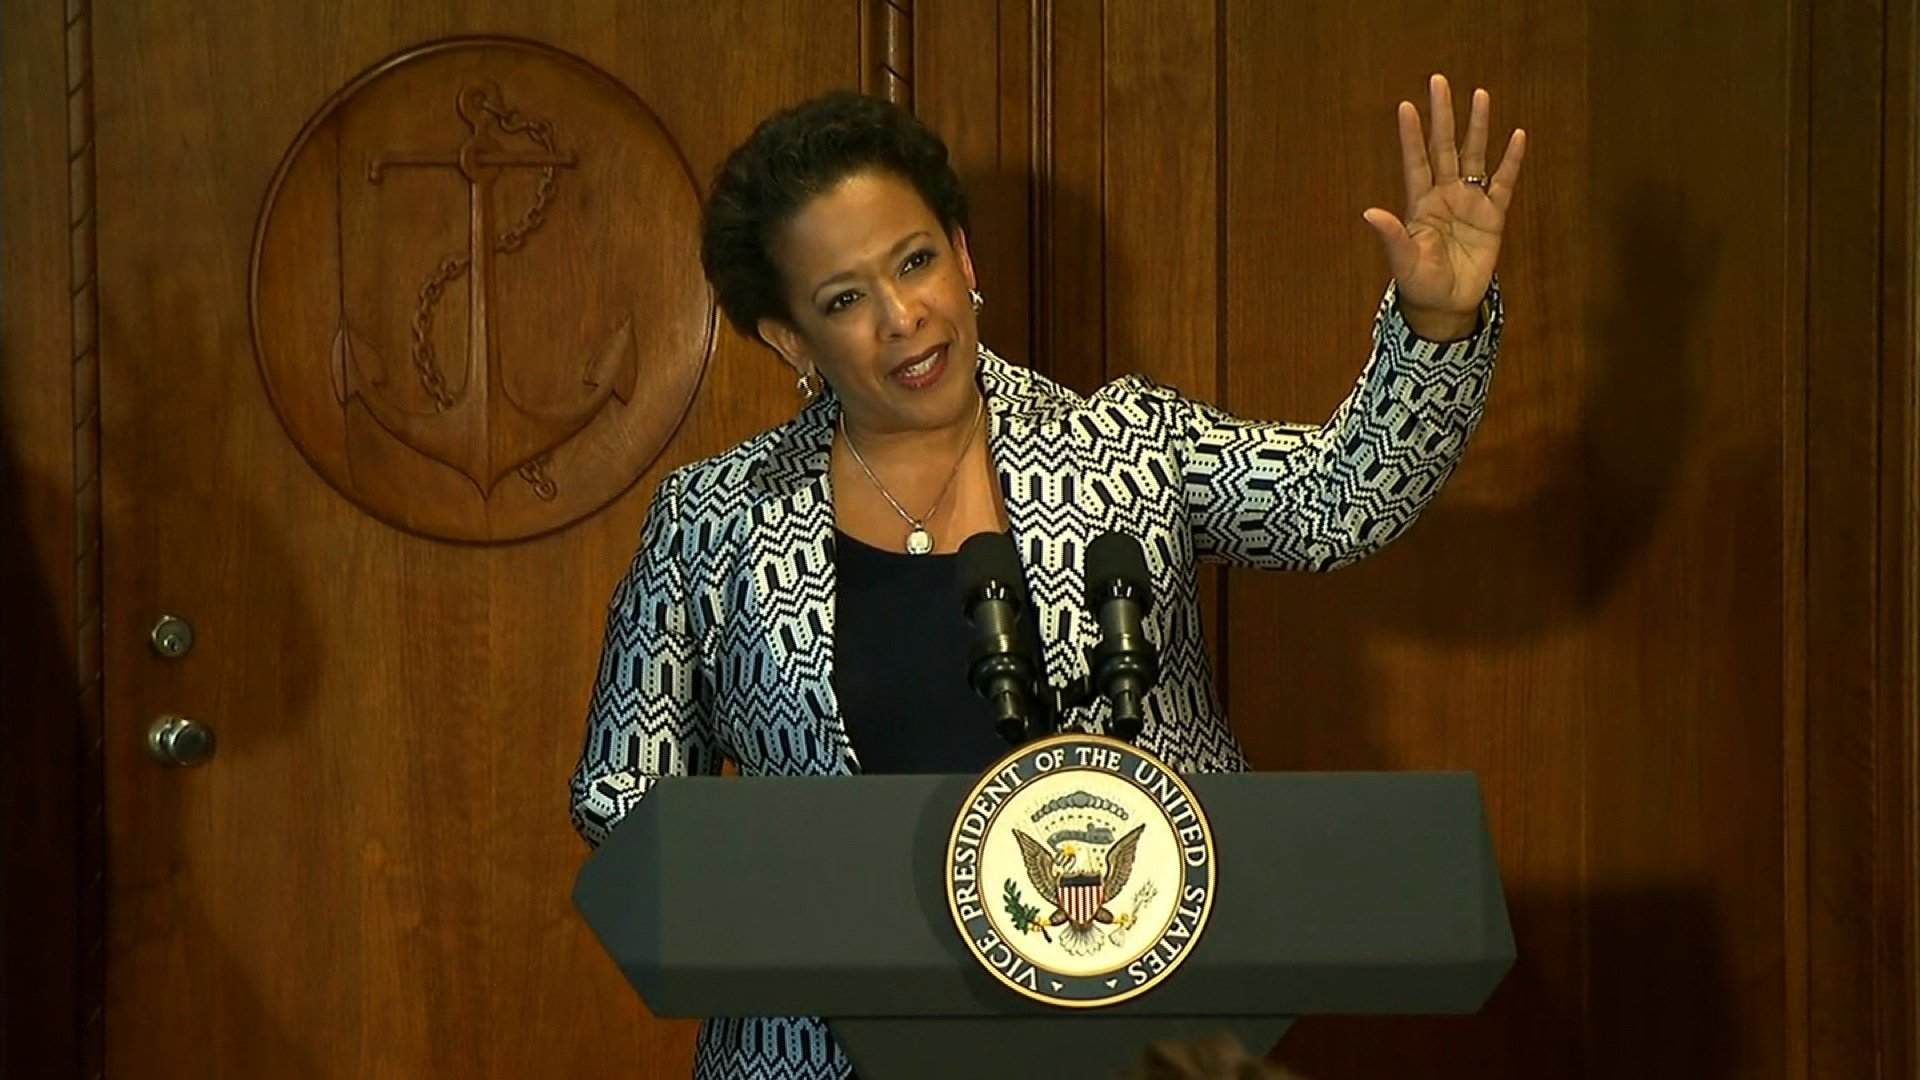 "Loretta Lynch was sworn in as the new U.S. attorney general on Monday, replacing Eric Holder. Lynch, the country's first African-American woman to serve in the role, had her nomination held up more than five months over politicking in the Senate. ""Ladies and gentlemen, it's about time,"" said Vice President Joe Biden at the swearing in ceremony. The Senate voted 56-43 on Thursday to confirm Lynch."